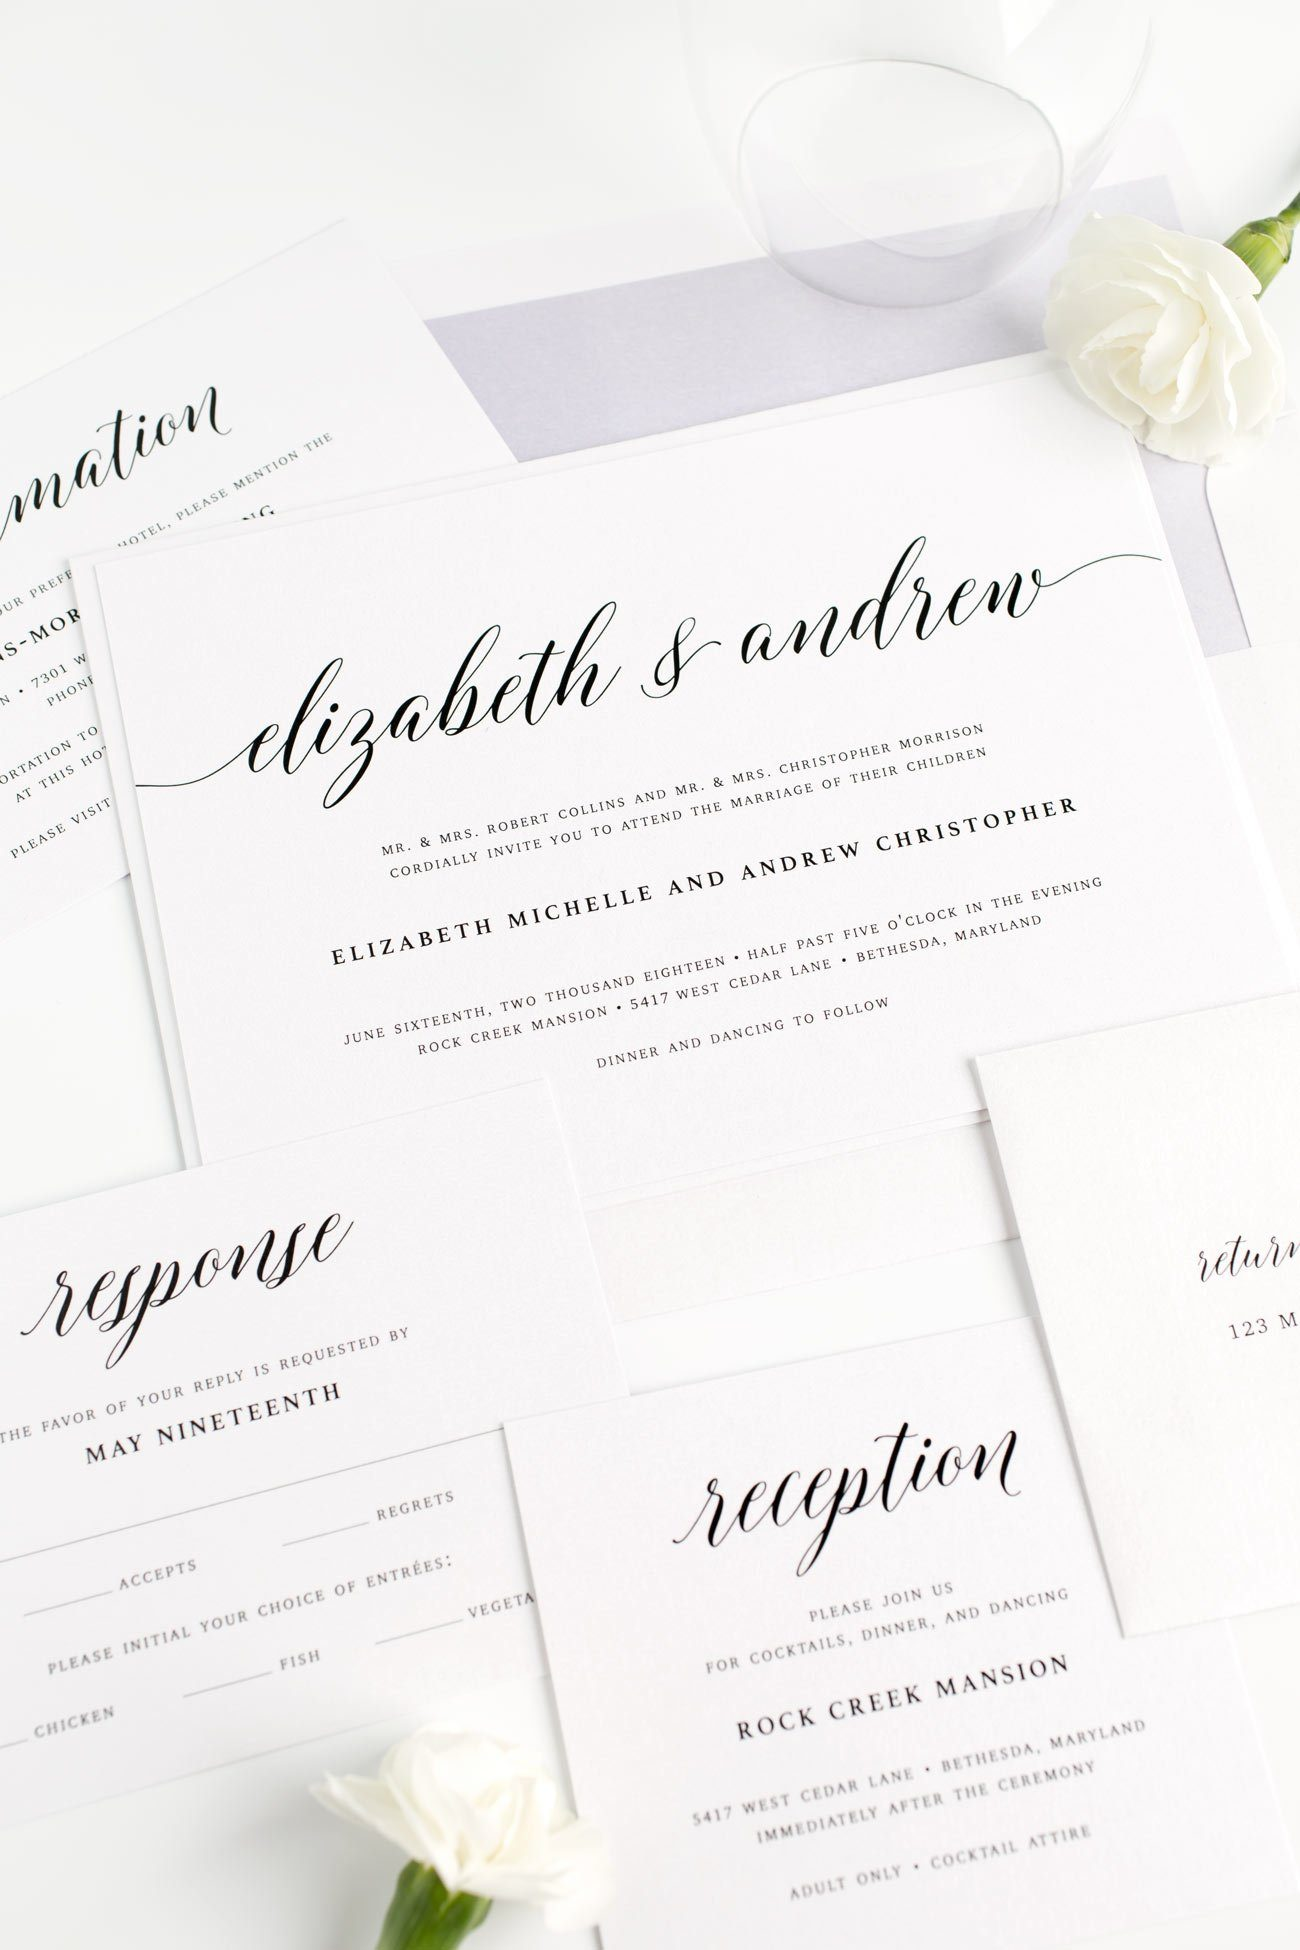 Elegant Lavender Wedding Invitations with a watercolor liner